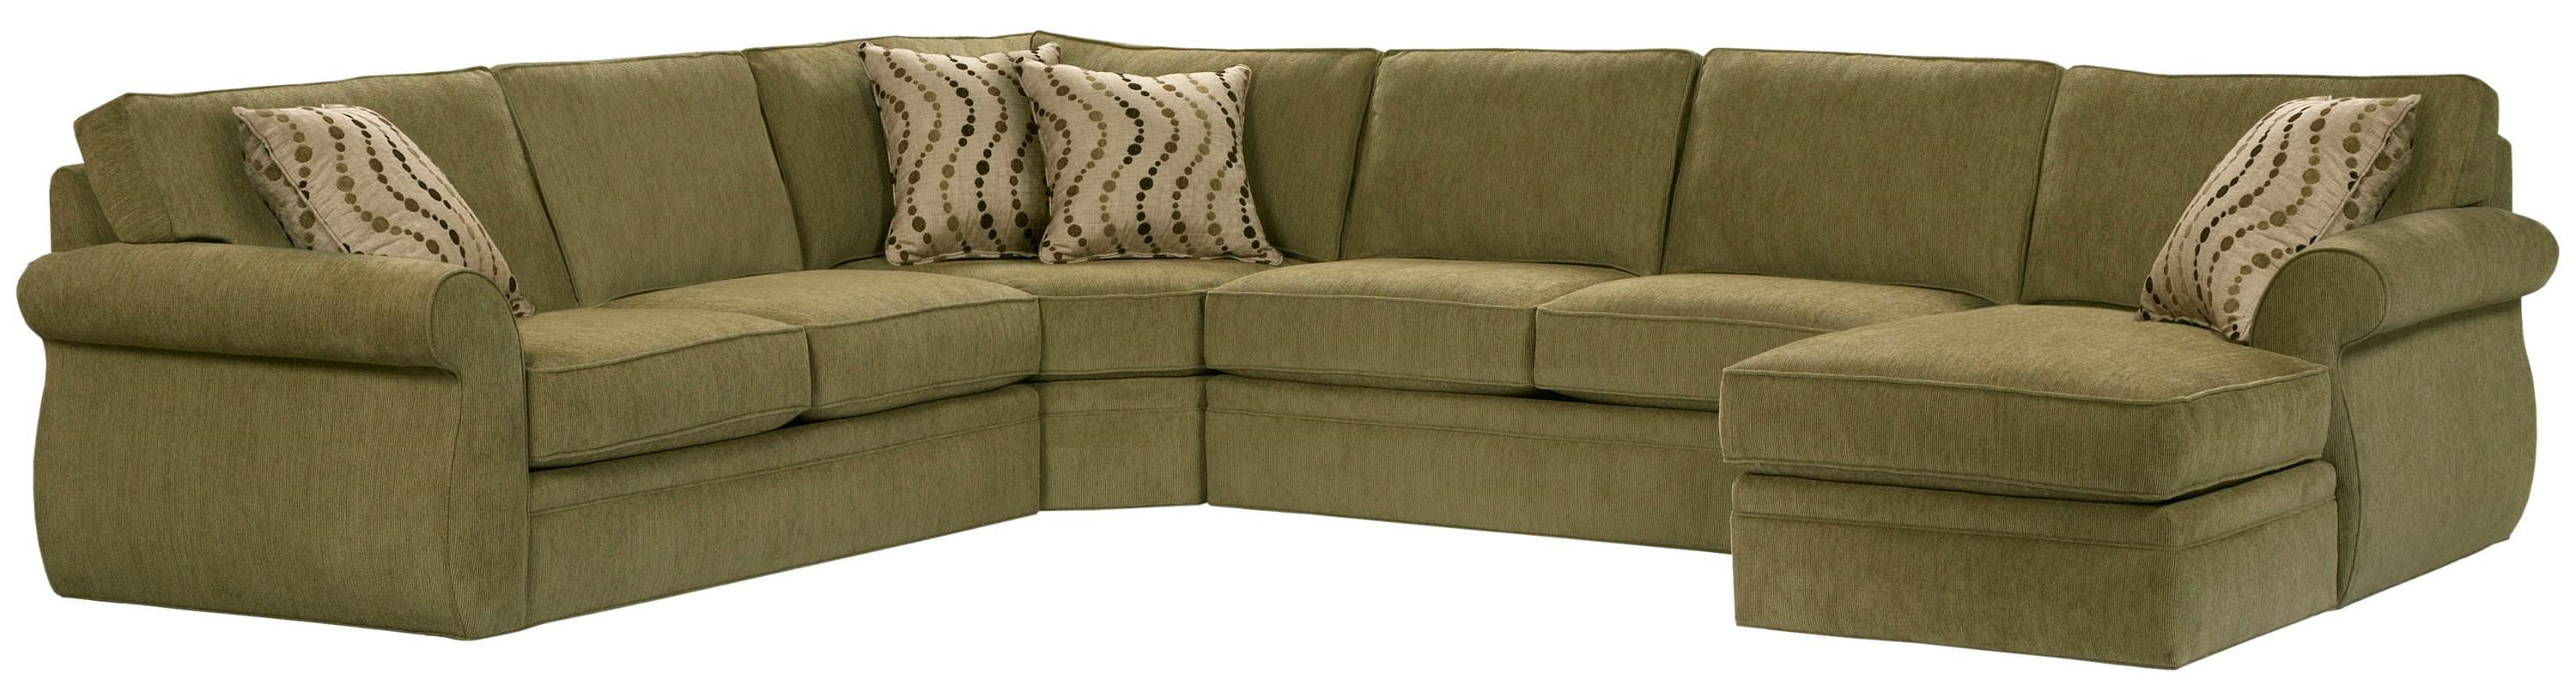 Broyhill Furniture Veronica Right Arm Facing Customizable Chaise Sectional    Hudsonu0027s Furniture   Sectional Sofas